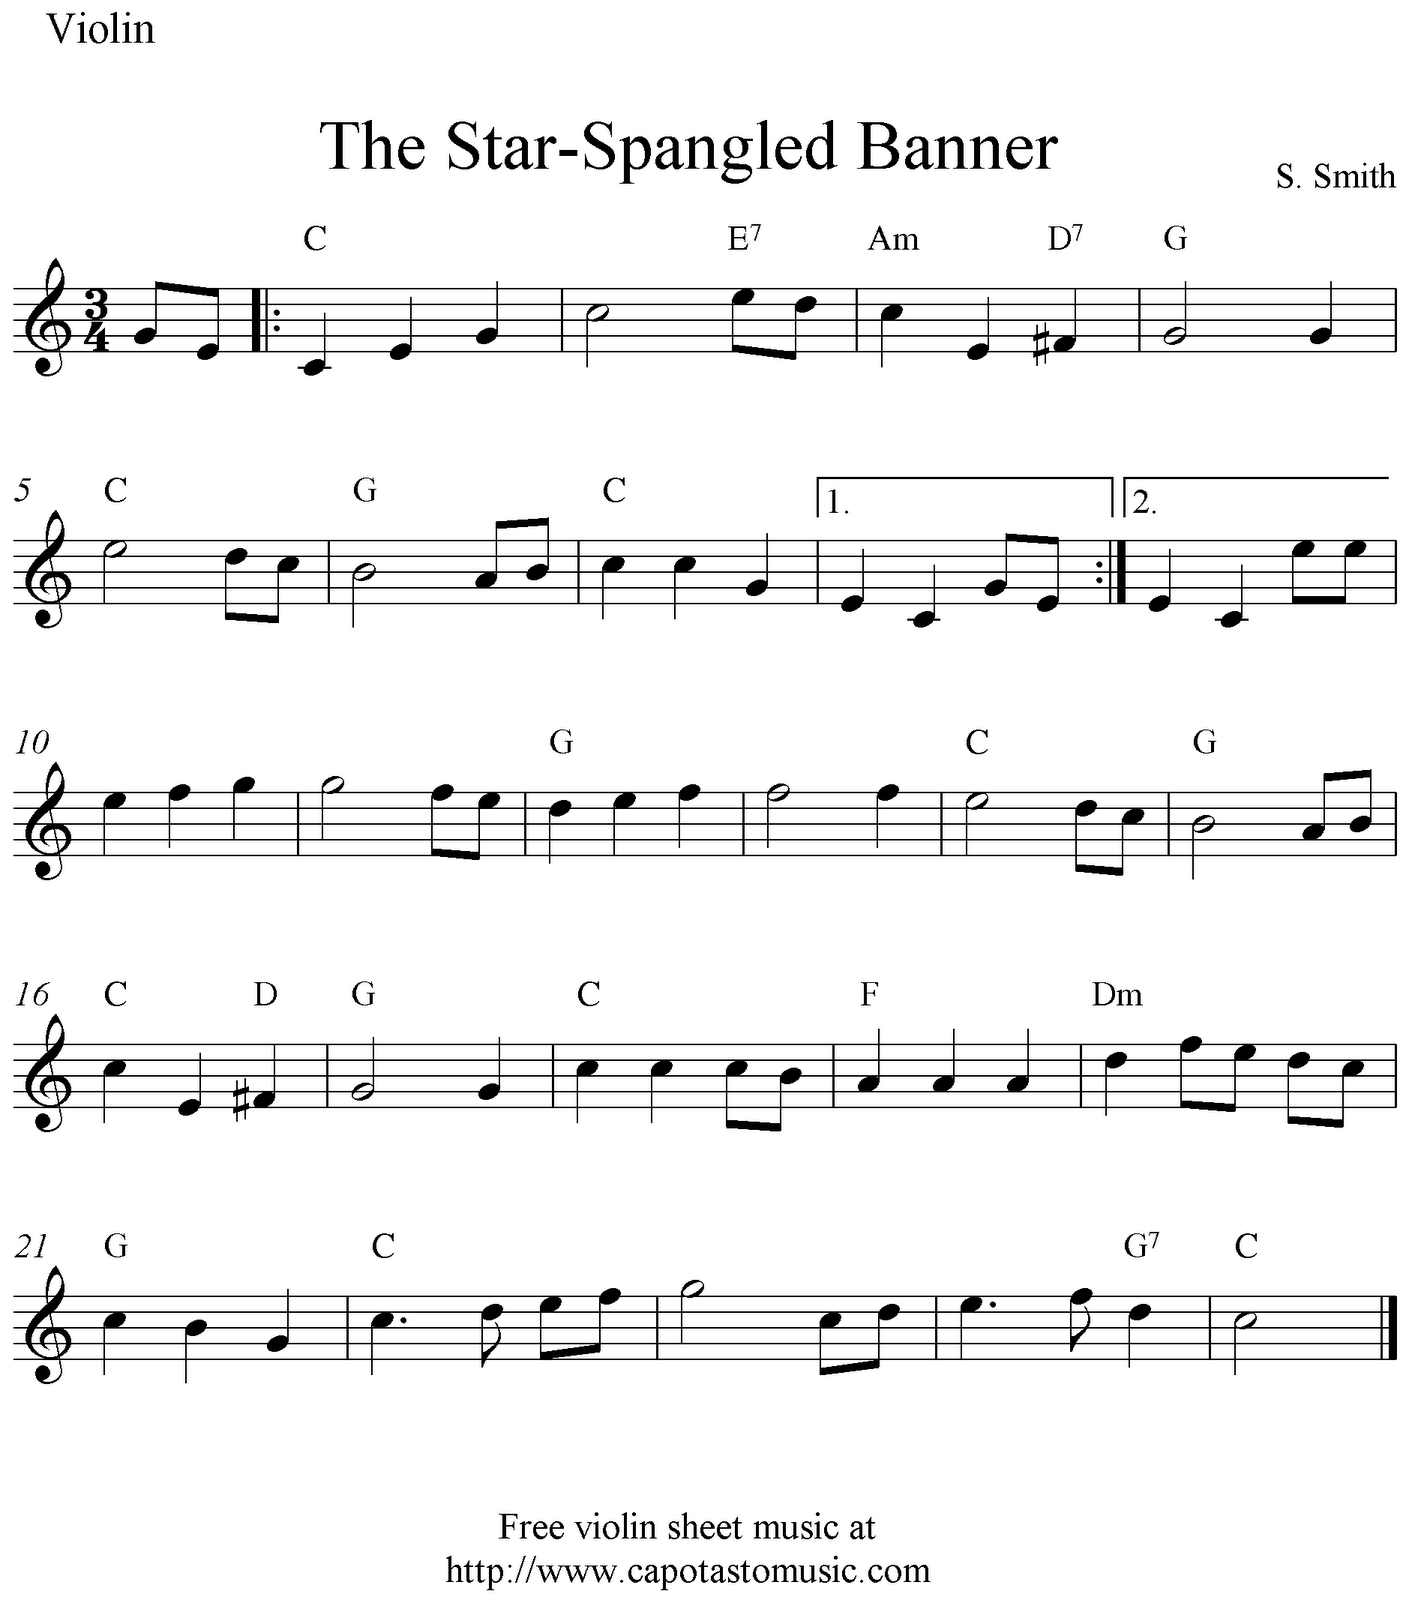 Sheet Music Violin The Star Spangled Banner Free Easy Violin Sheet Music Notes Sheet Music Notes Sheet Music Violin Sheet Music